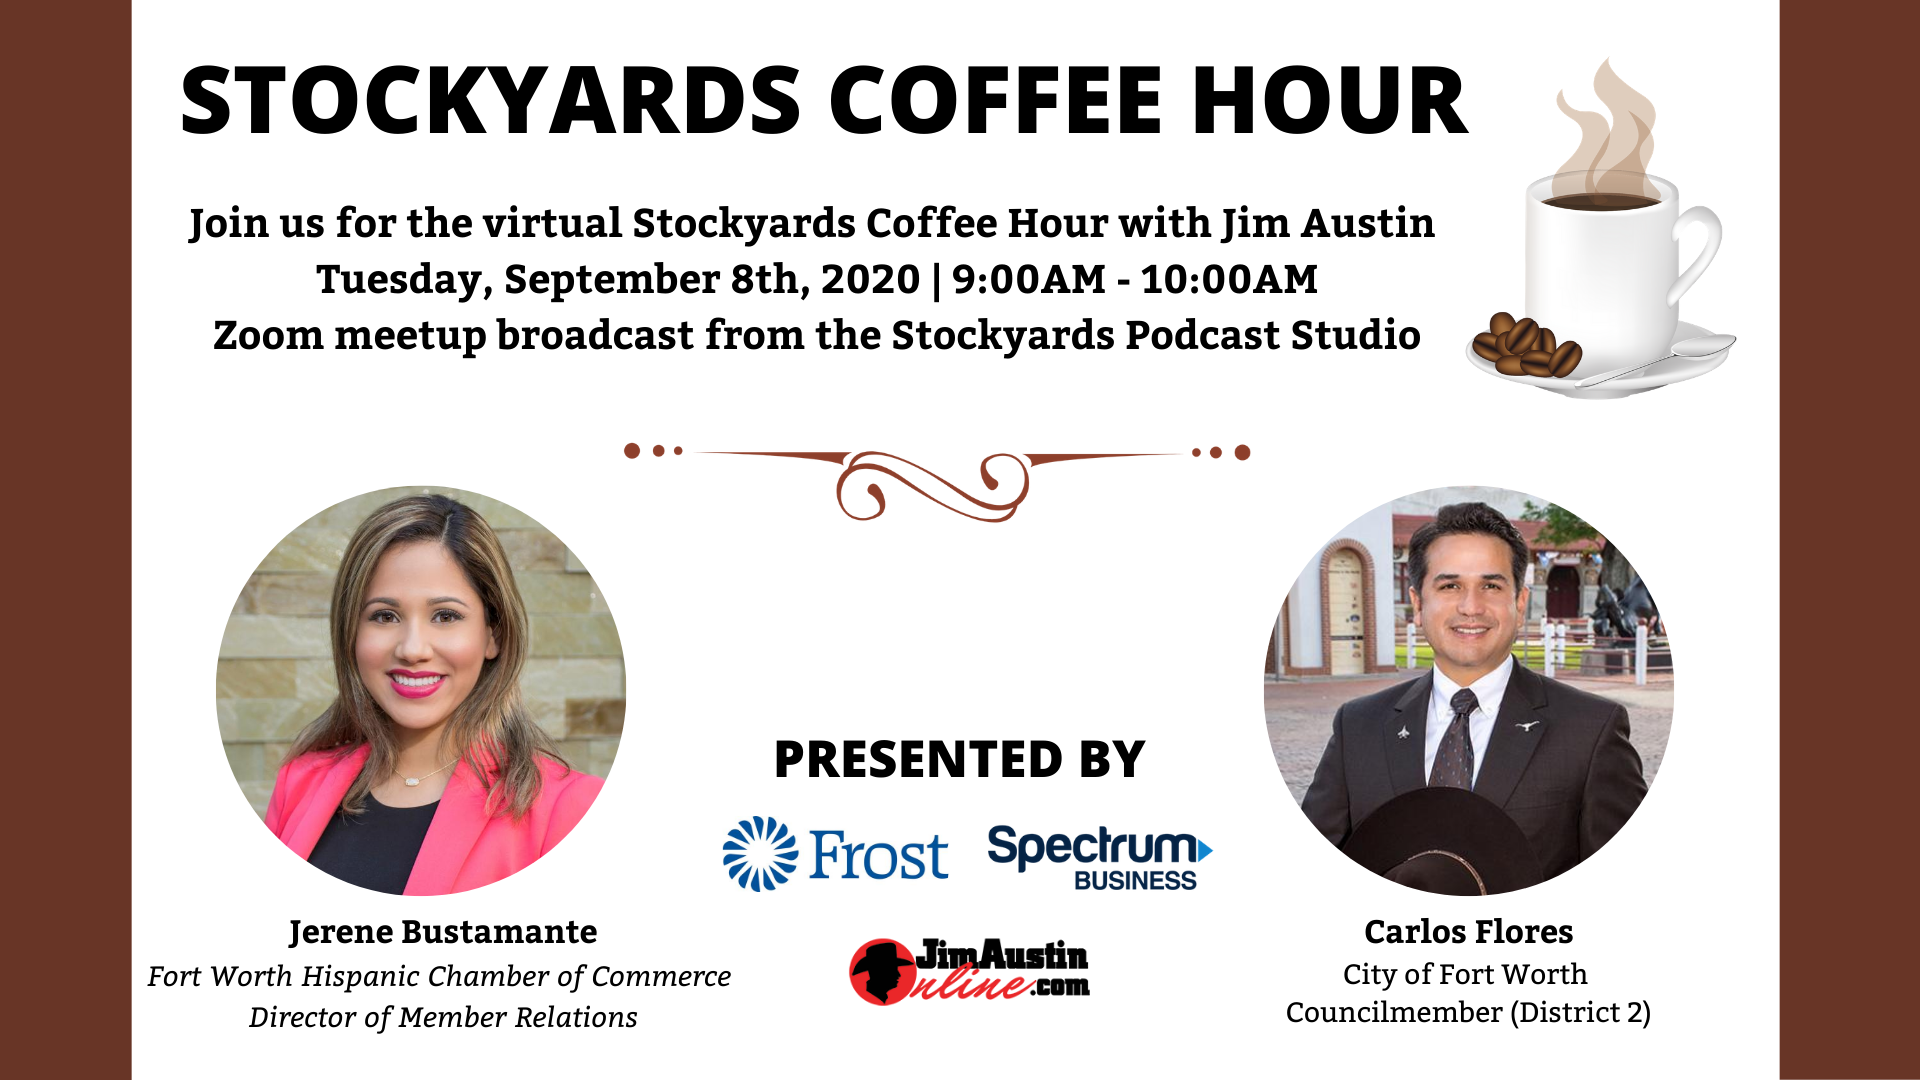 StockyardsCoffeeHourSept2020-2